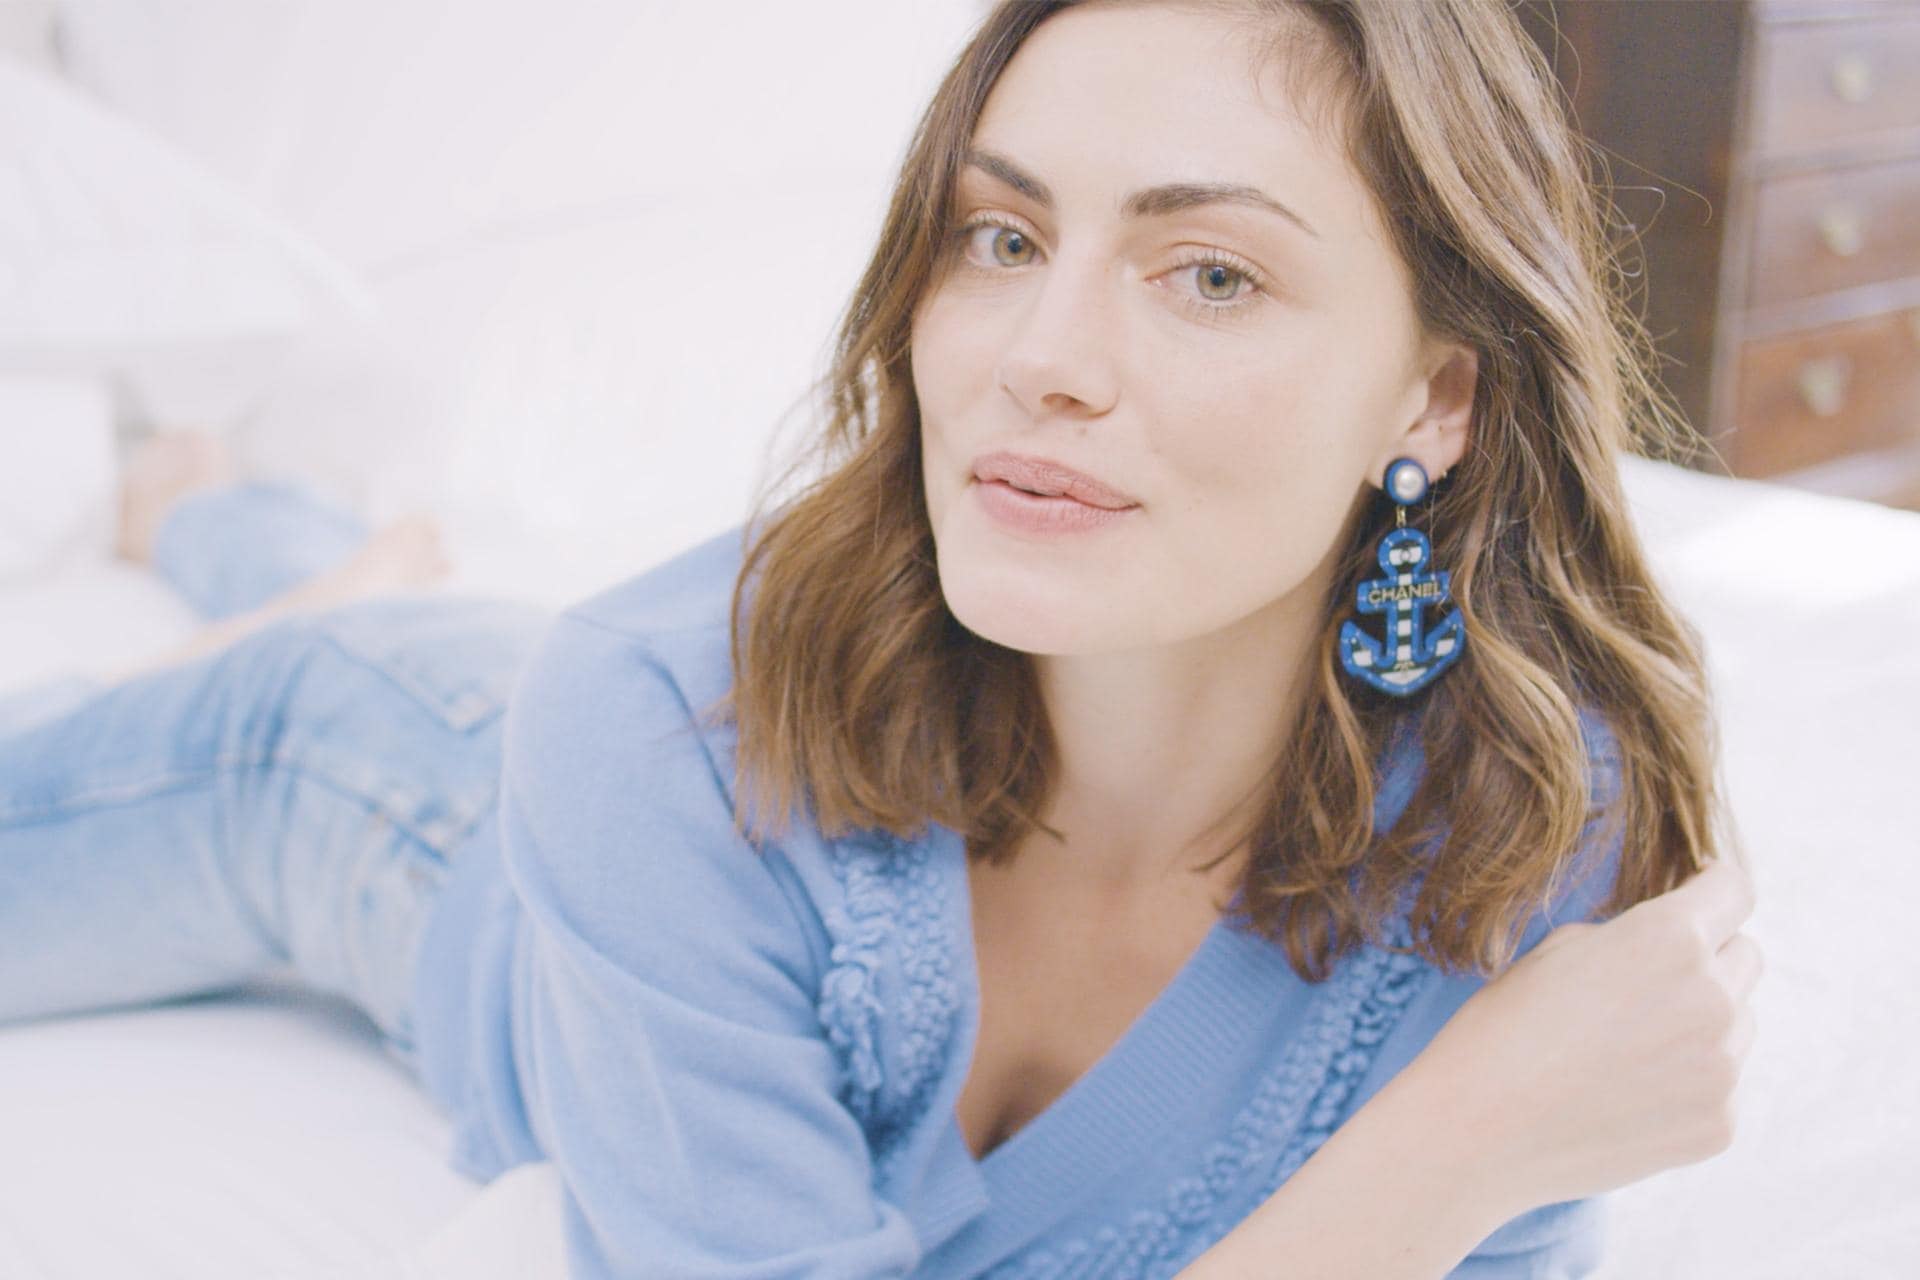 Phoebe Tonkin Australian Actress and Model